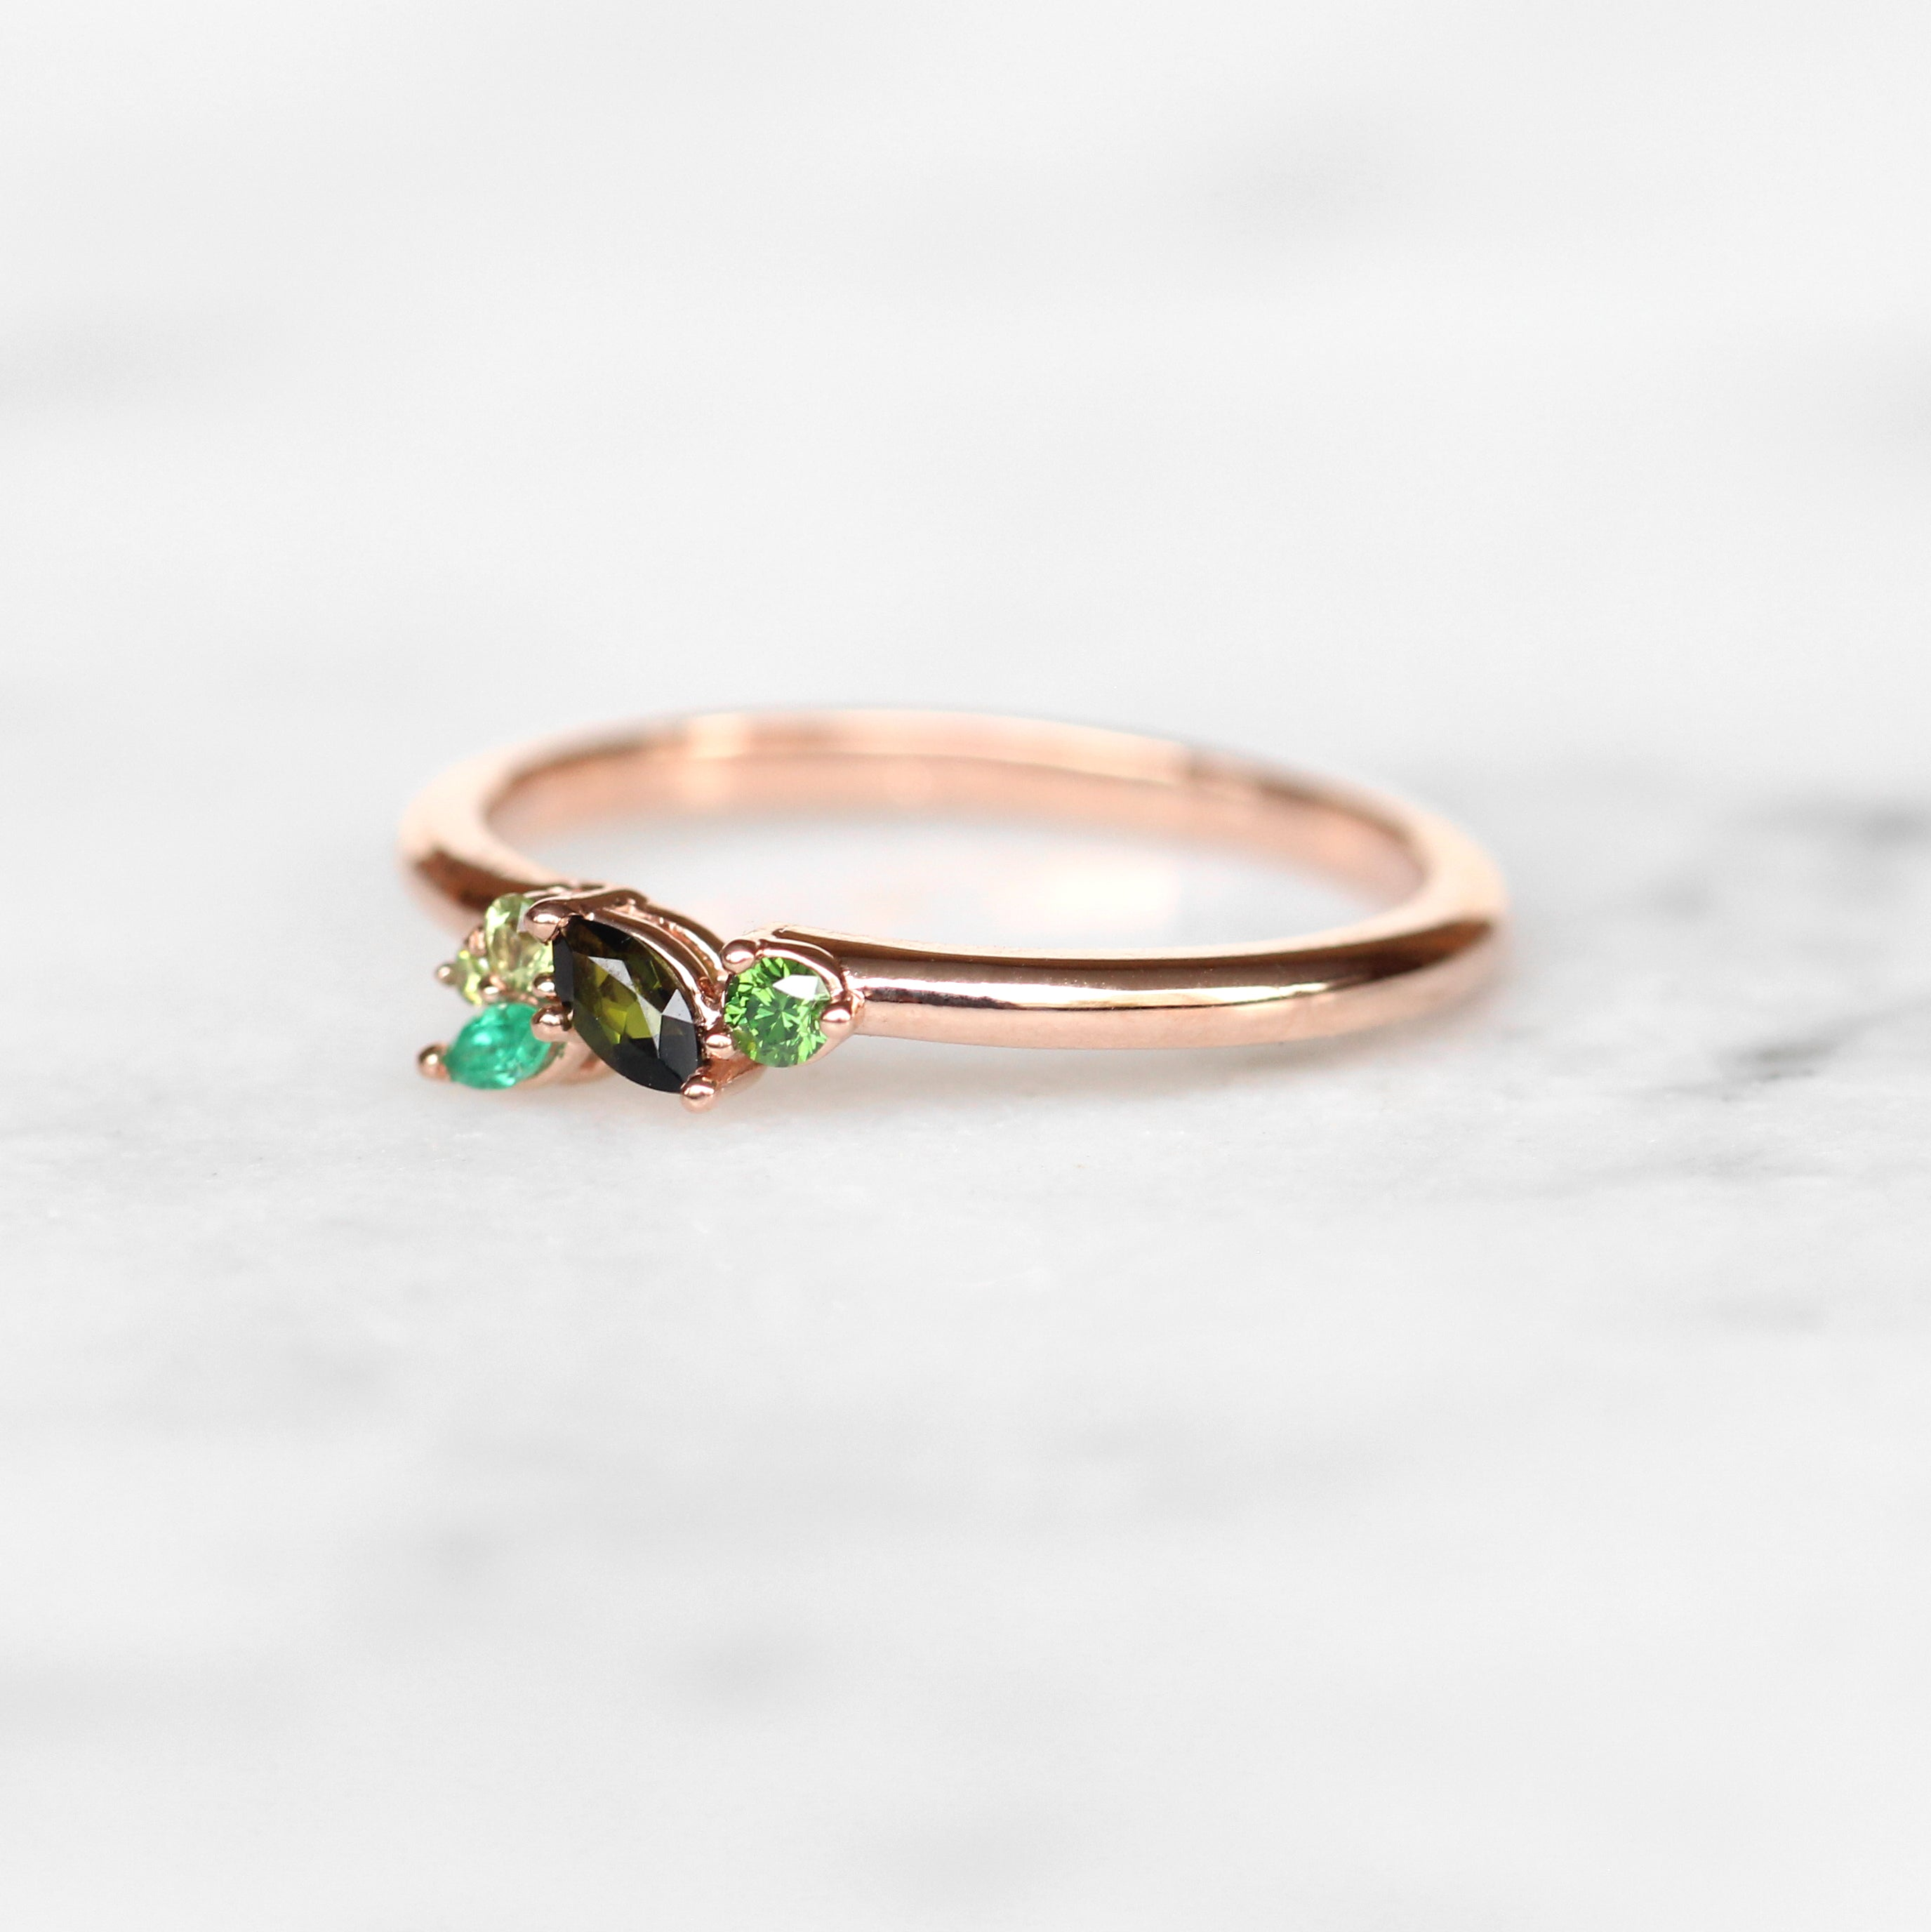 Anna Green Gemstone + Diamond Cluster Stackable or Wedding Ring - Your choice of metal - Custom - Midwinter Co. Alternative Bridal Rings and Modern Fine Jewelry